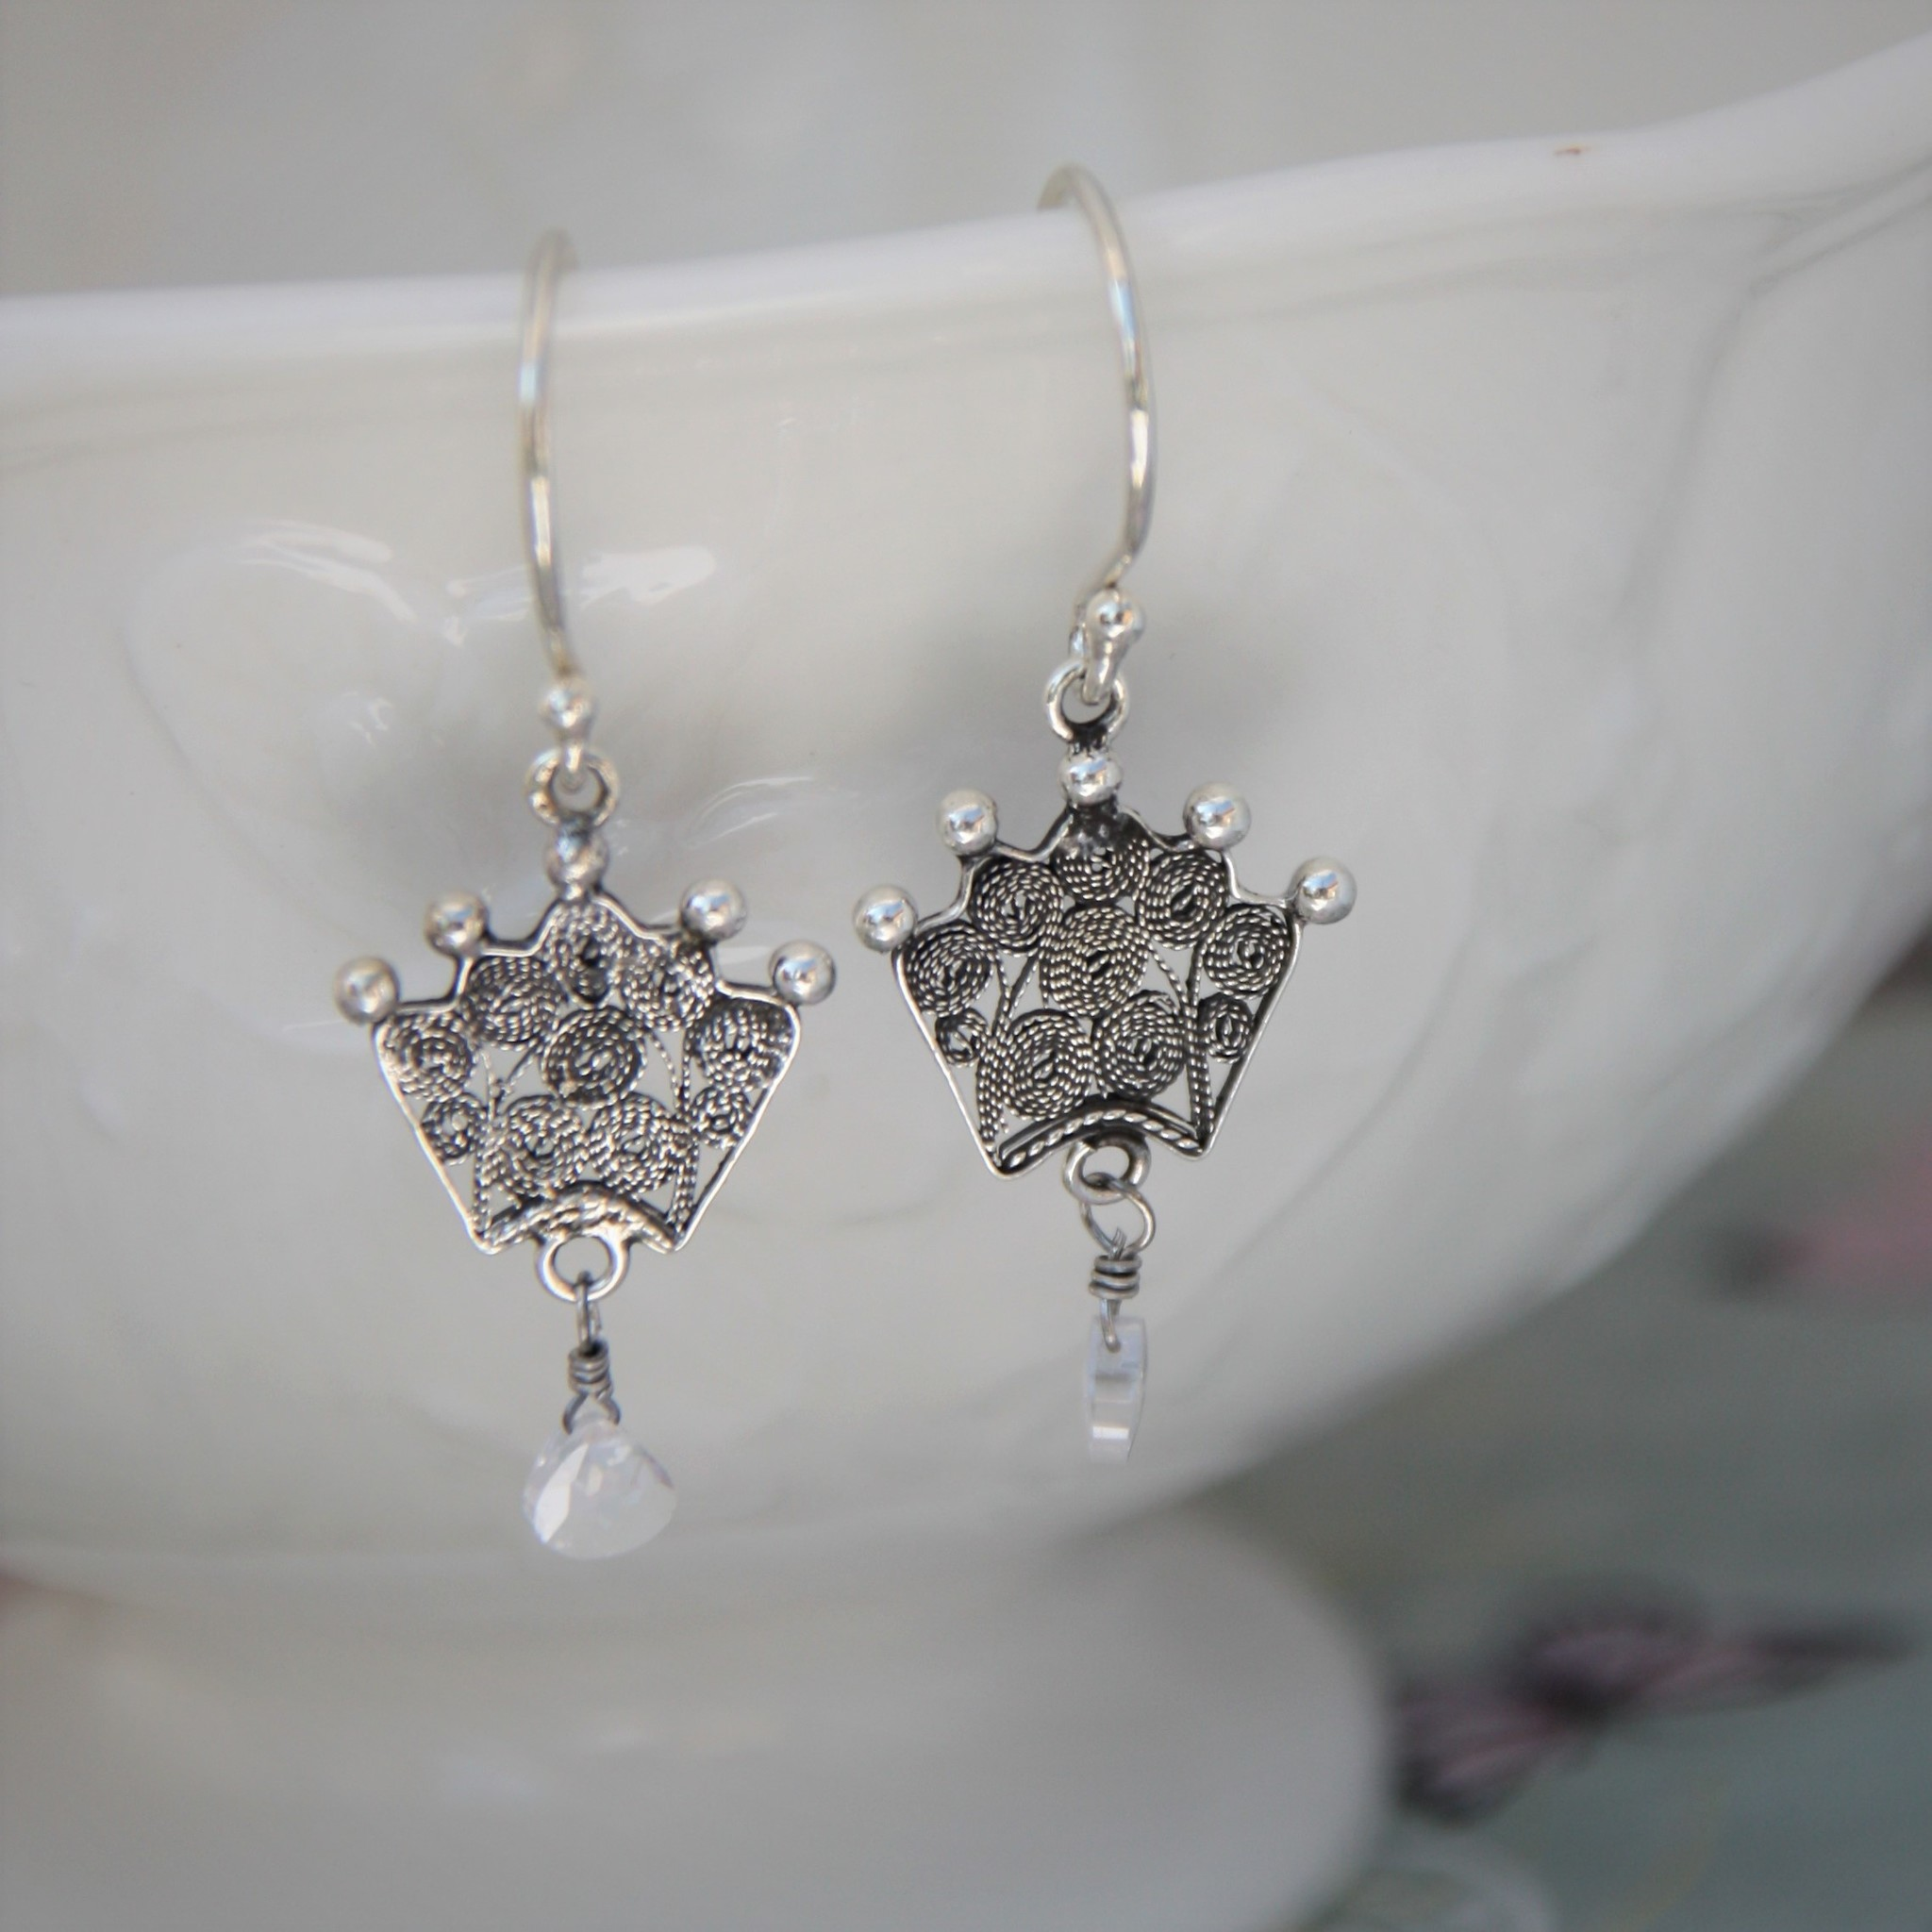 Yvone Christa Silver Yvone Christa earrings with Zirconium